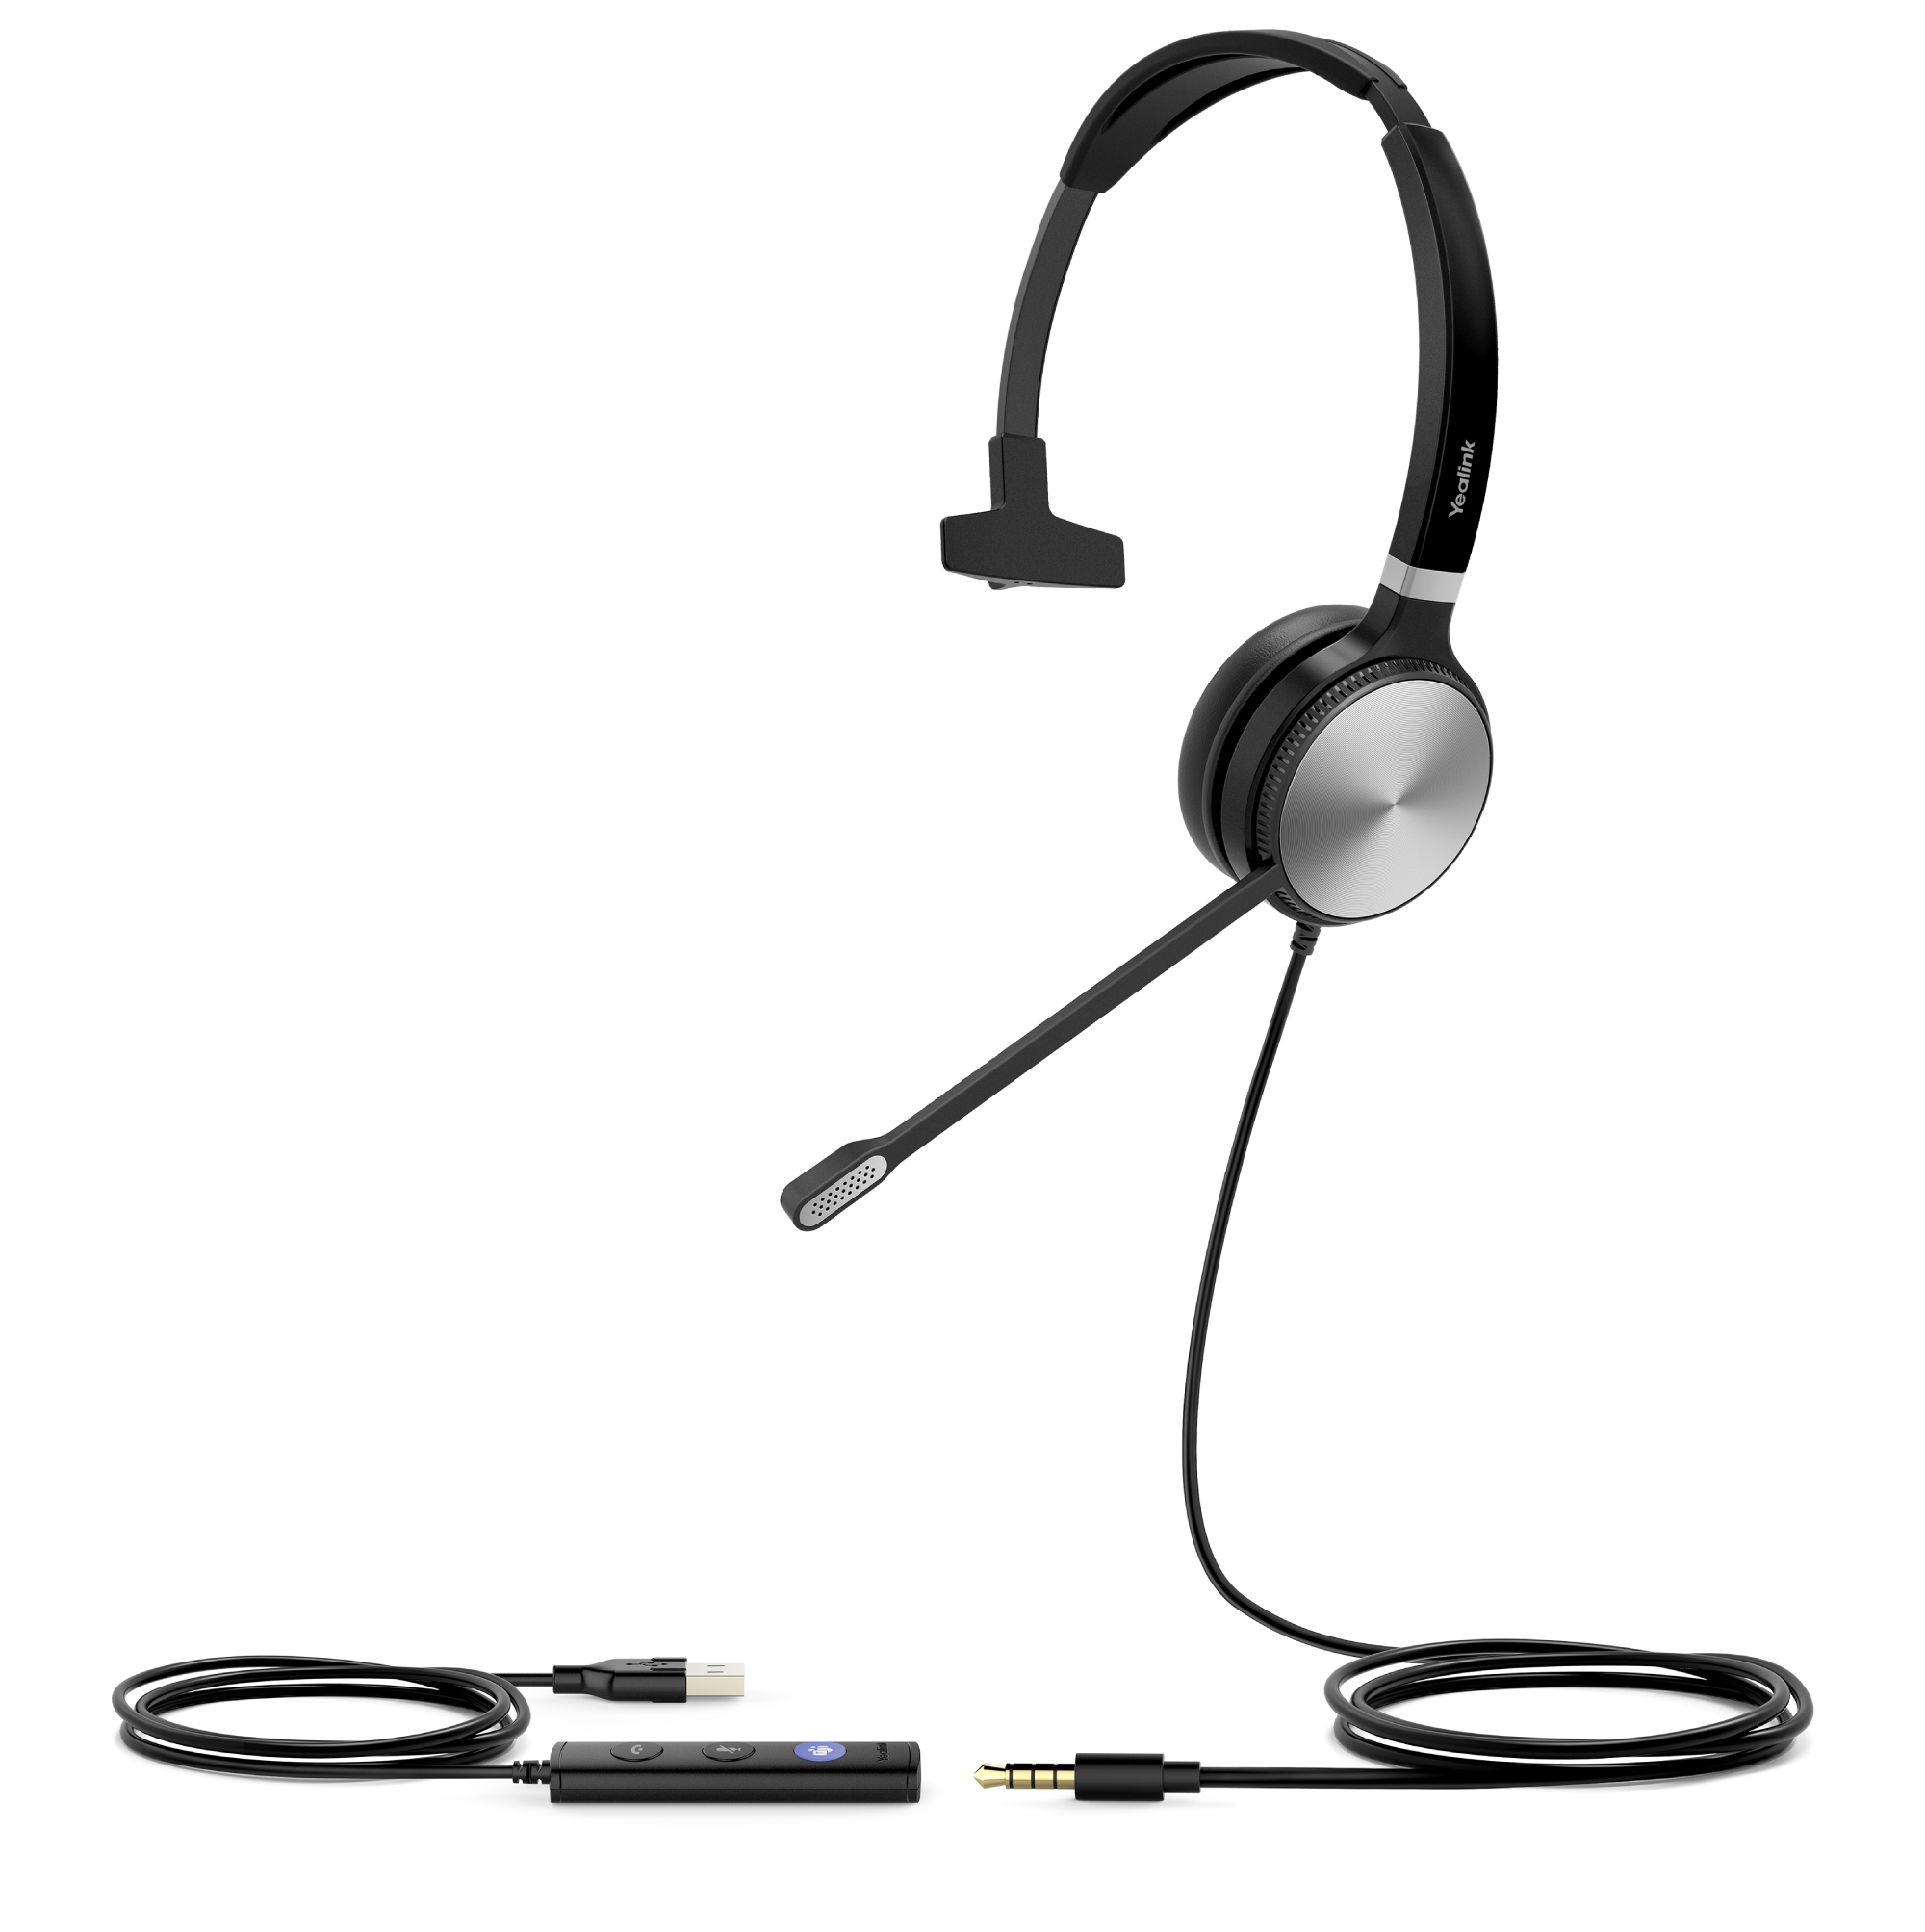 Photograph of Yealink UH36 Headset